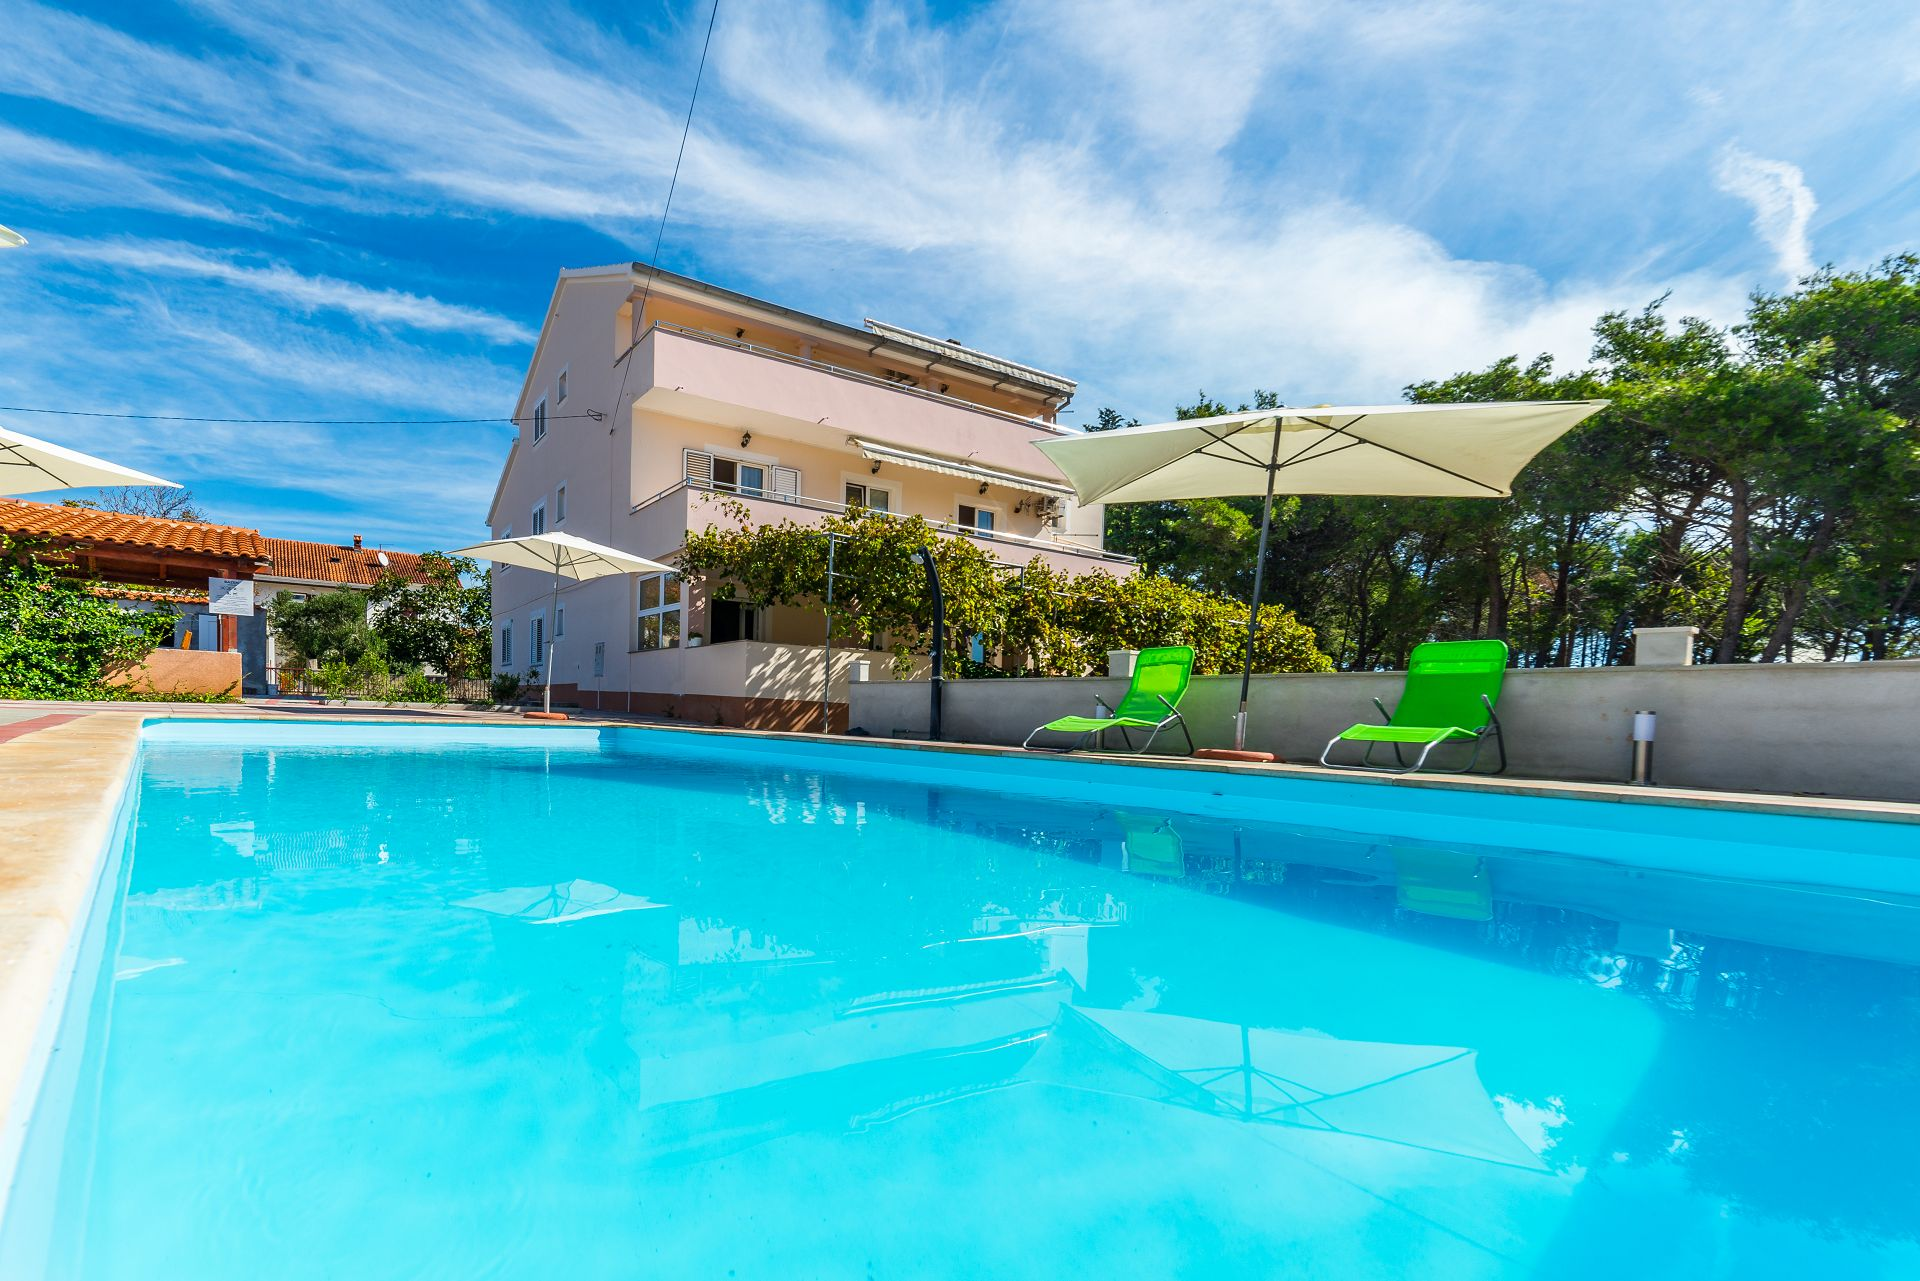 Mlađo - Privlaka - Apartments Croatia